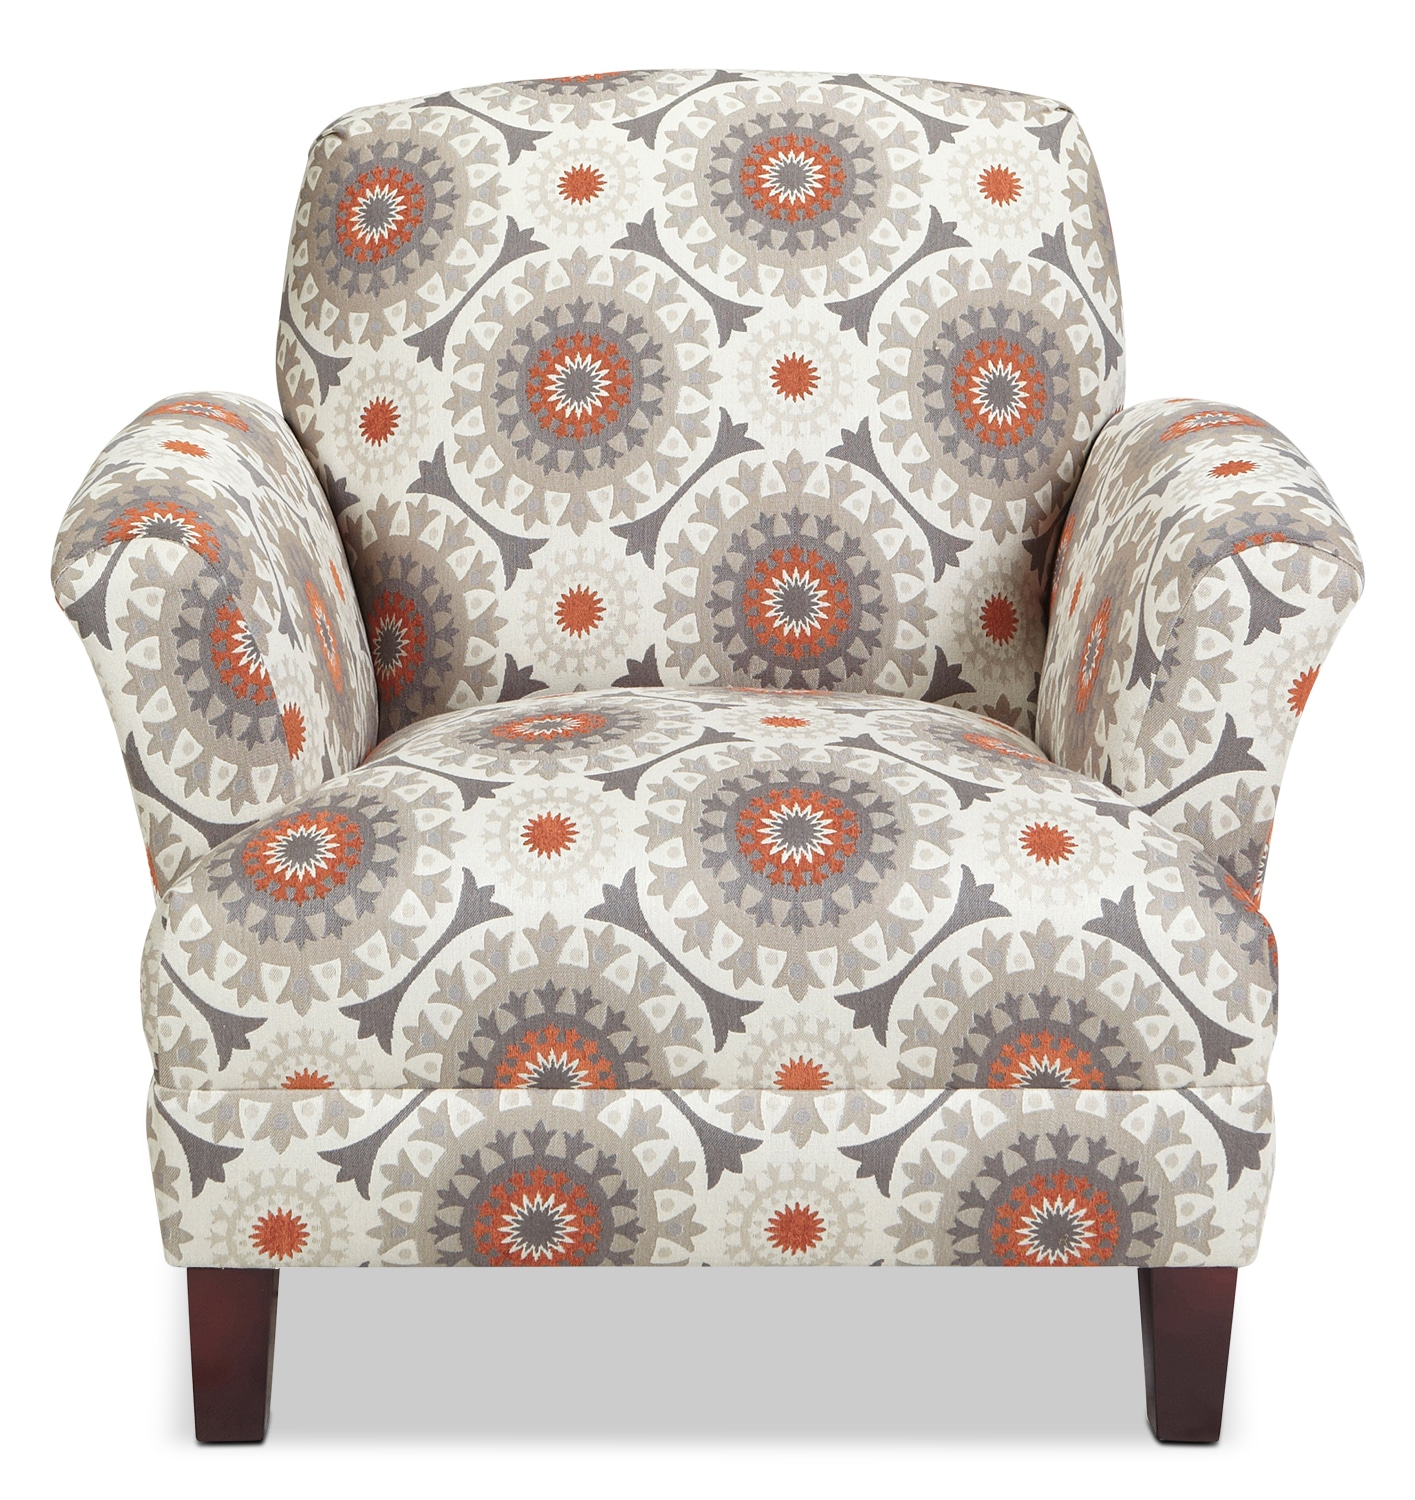 Westby Accent Chair - Medallions